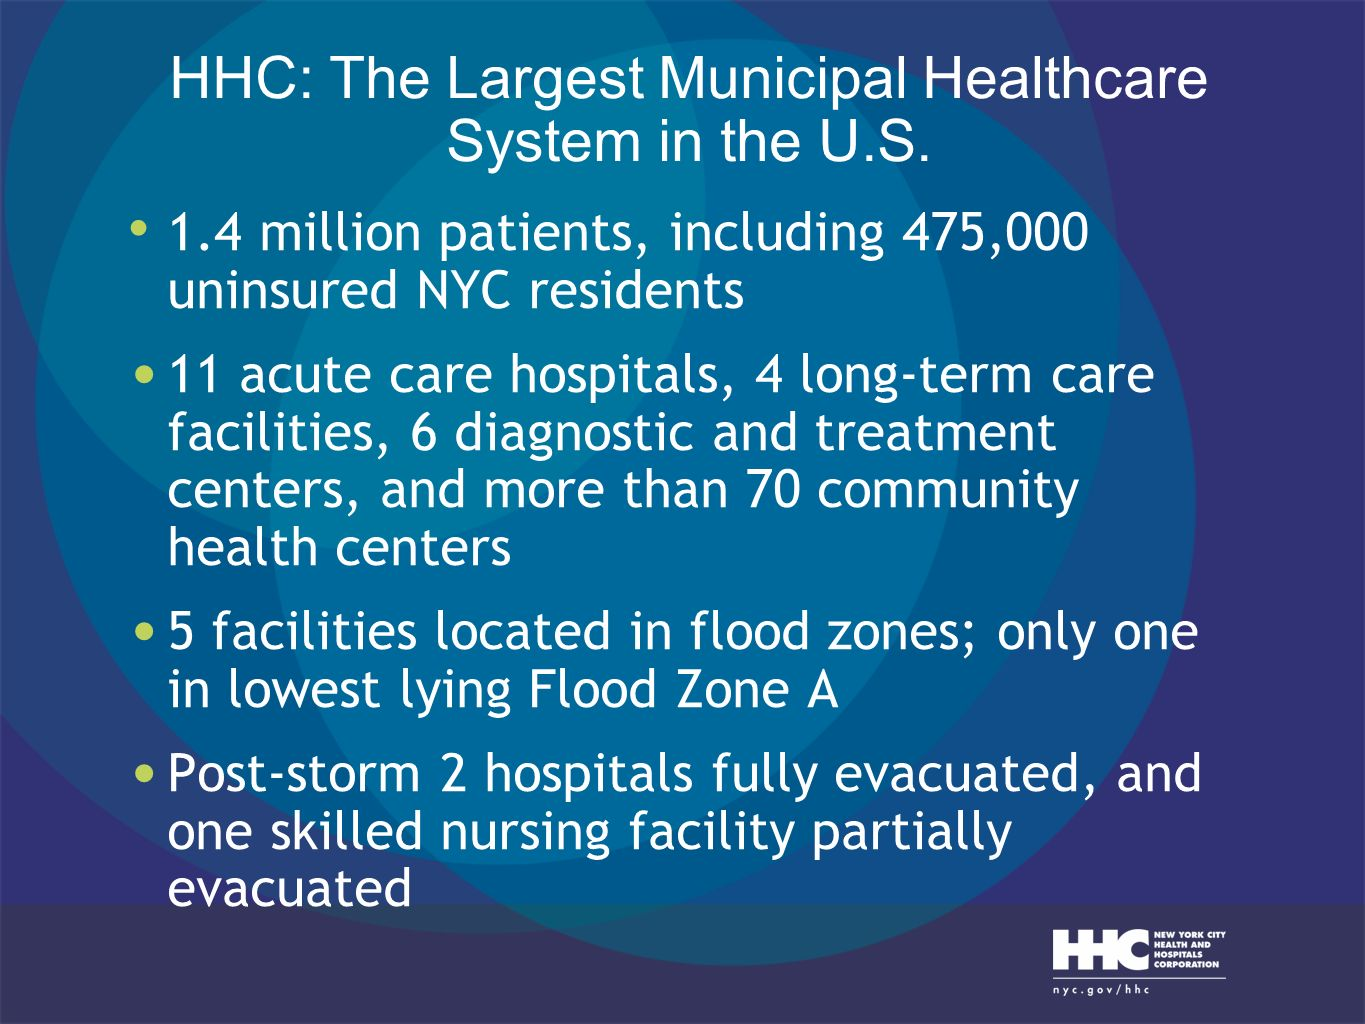 HHC: The Largest Municipal Healthcare System in the U.S.